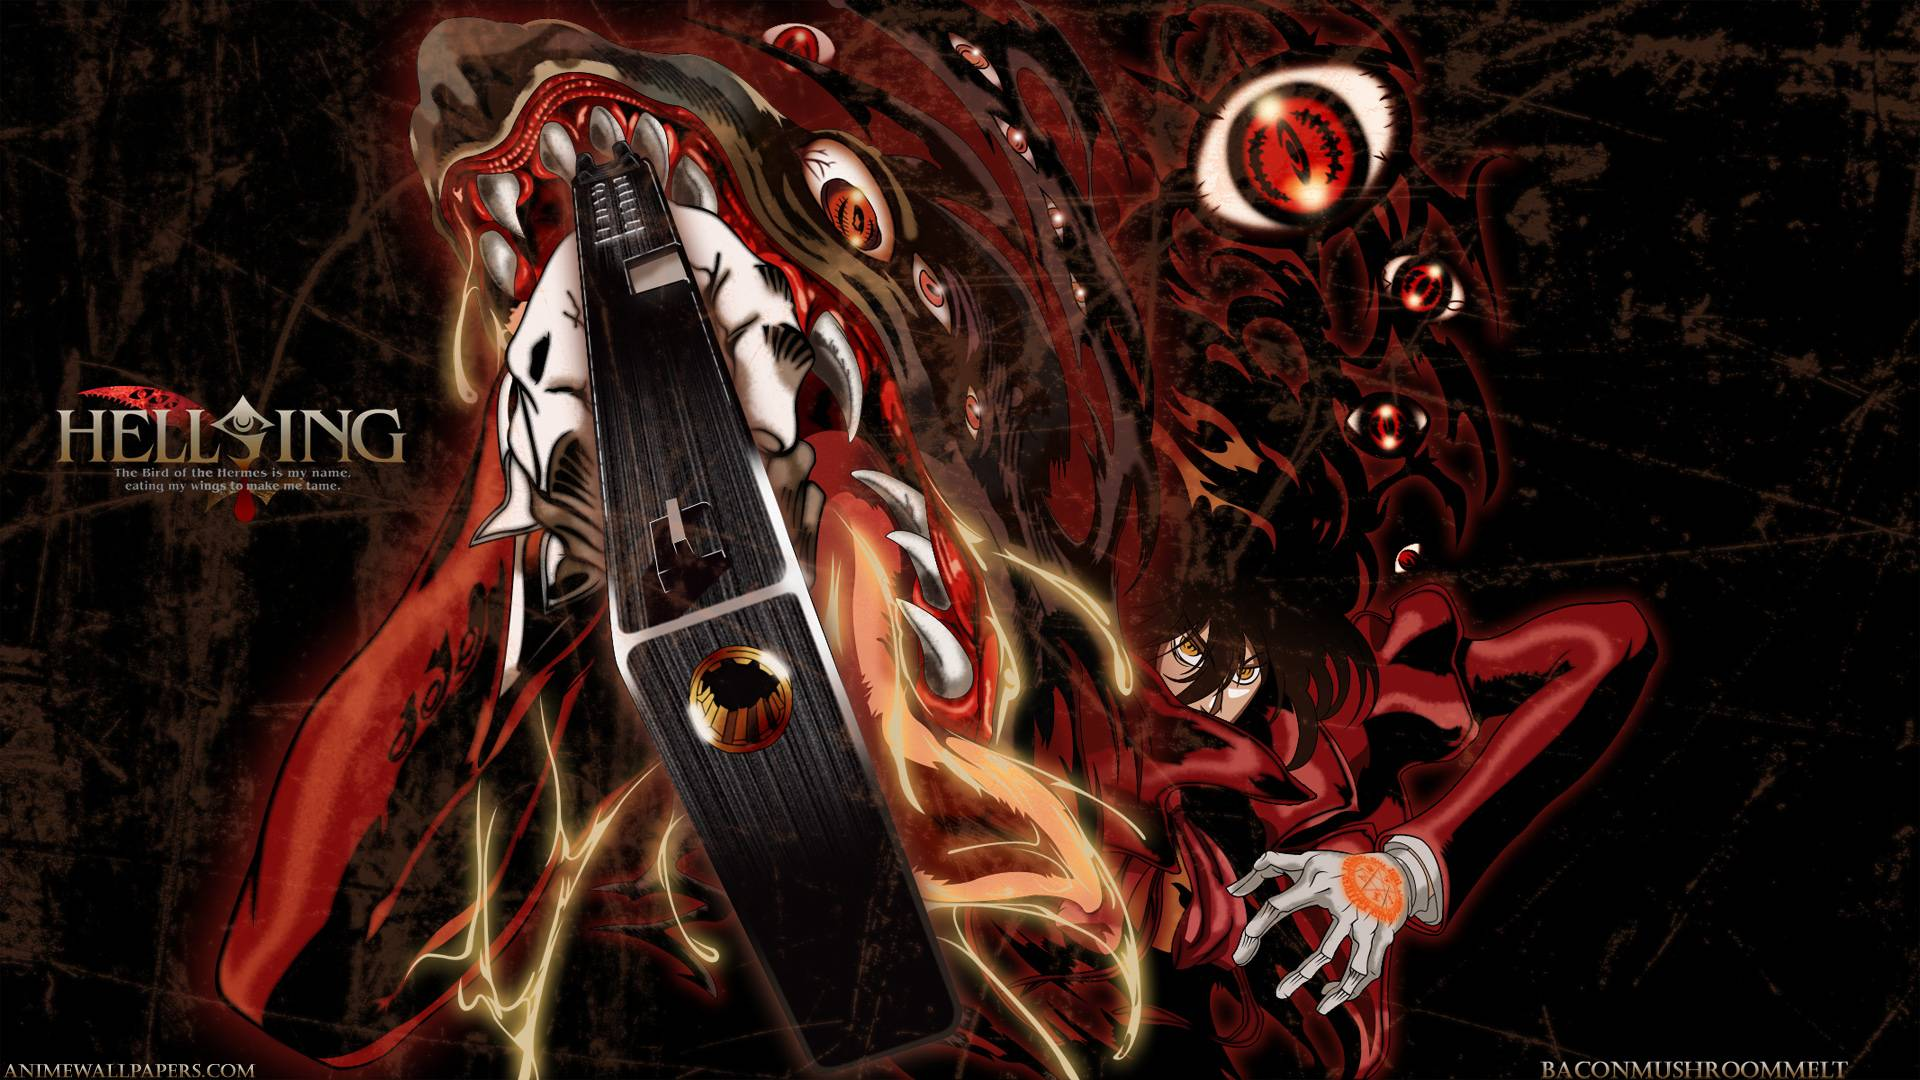 Hellsing Hd Wallpaper Zerochan Anime Image Board